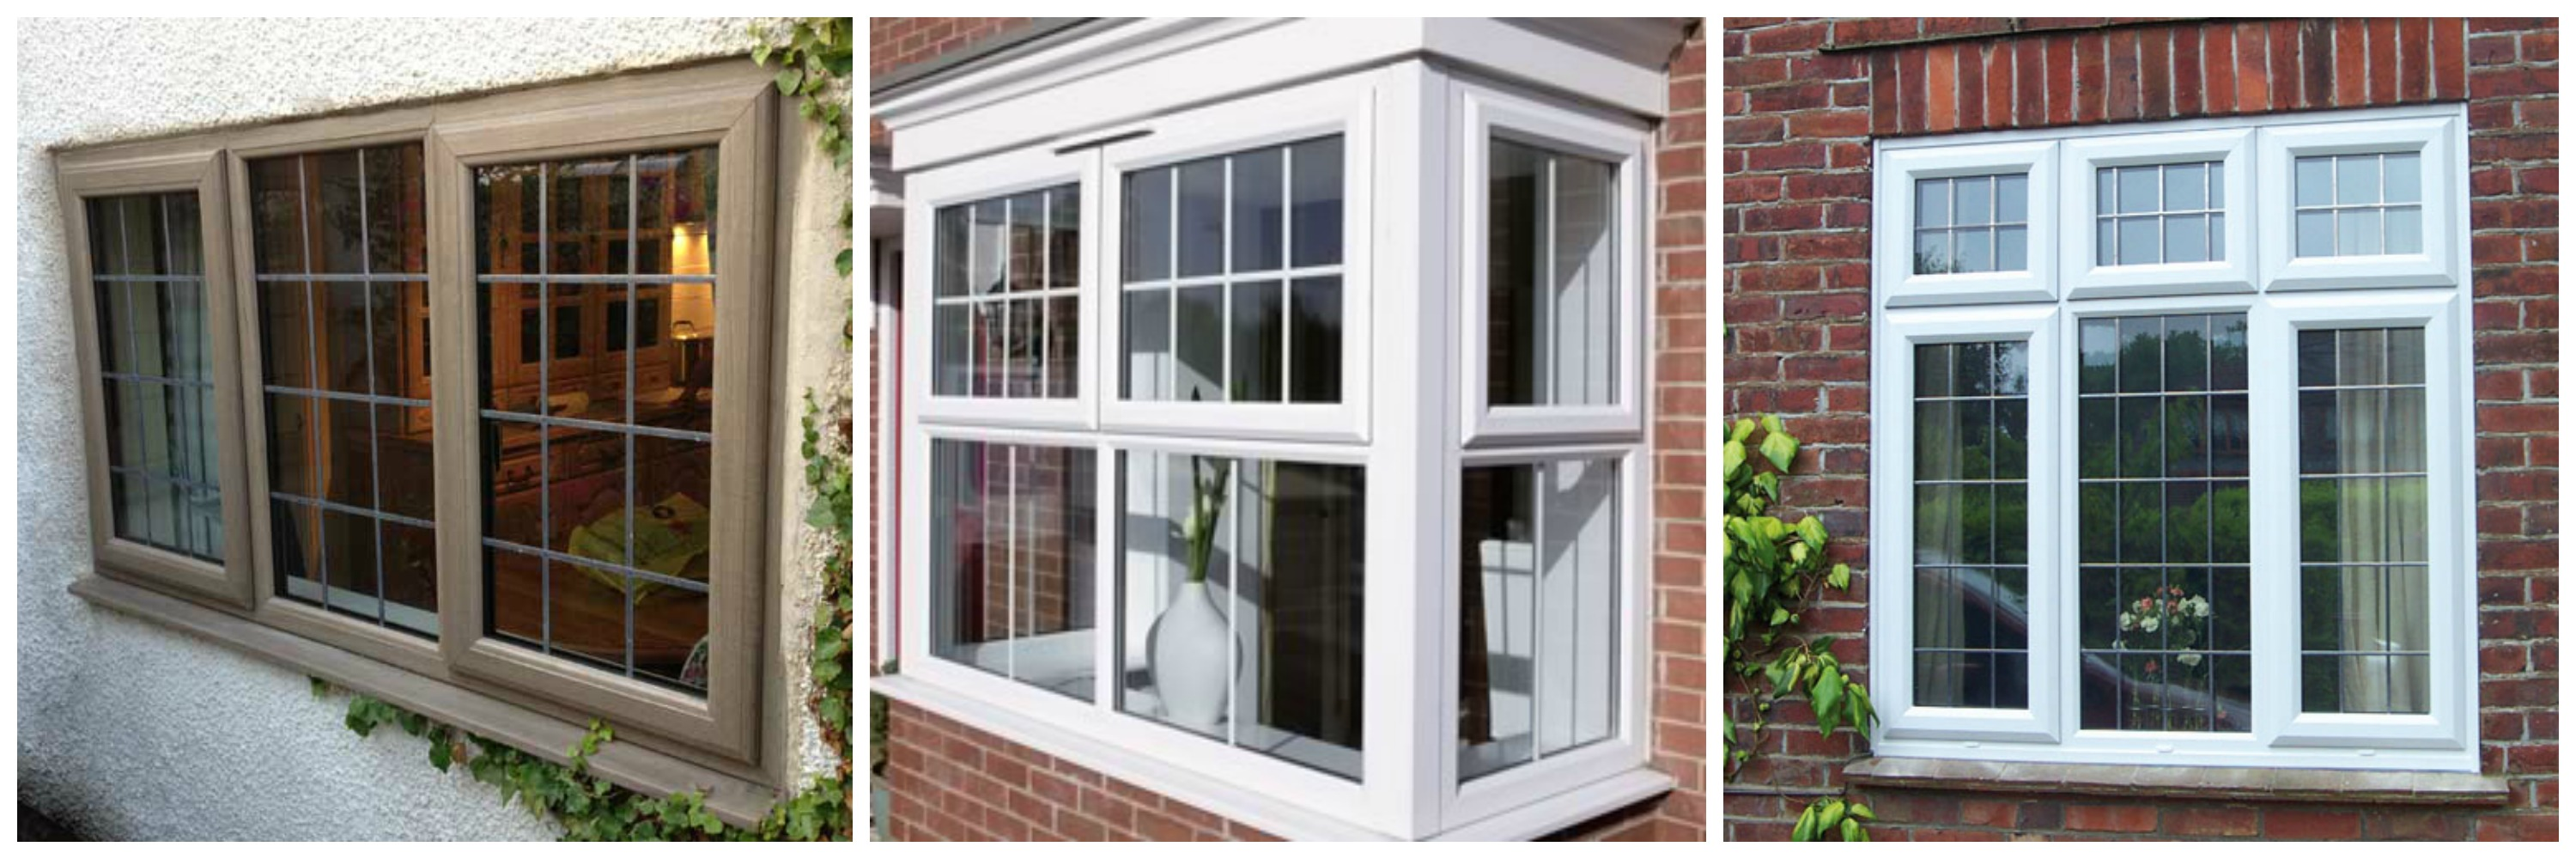 Reasons to install the double glazed window or doors